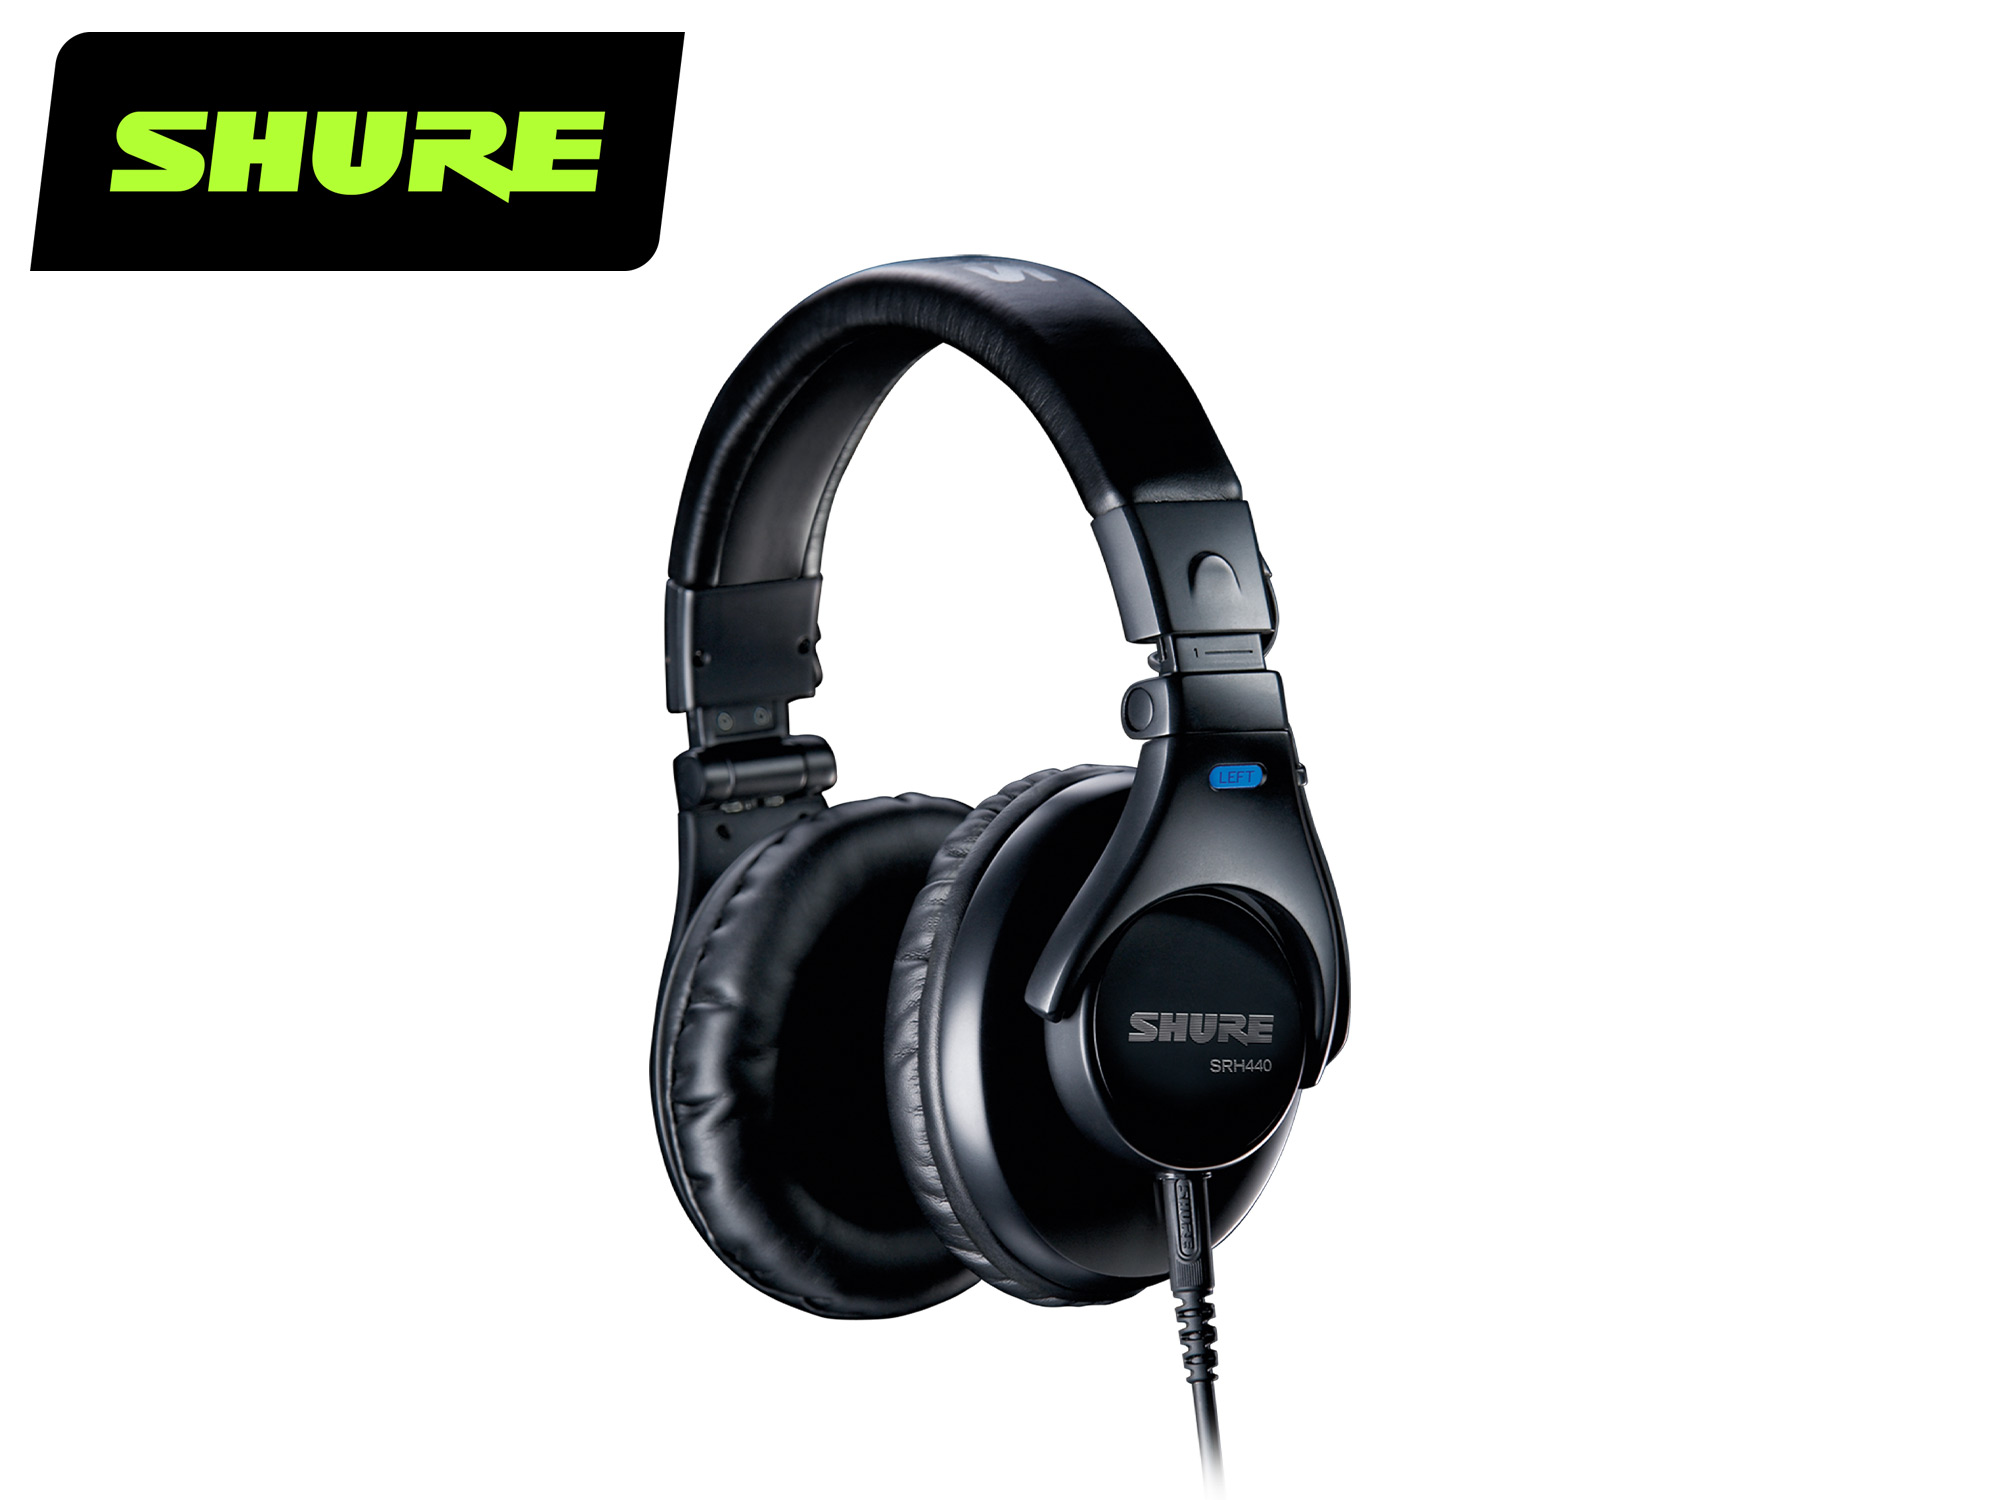 Shure SRH440 Professional Monitoring Headphones